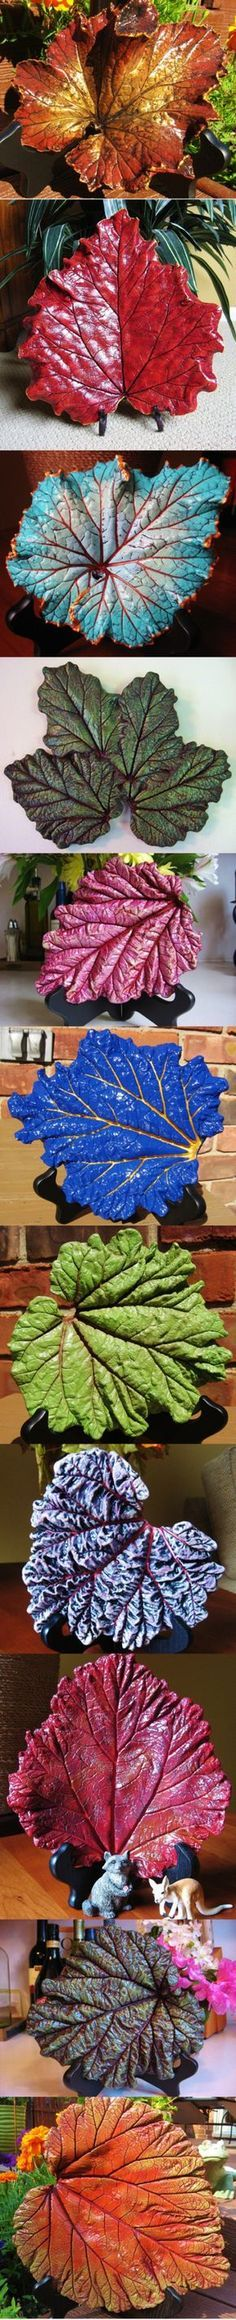 Concrete leaf castings made from real leaves. They are all hand filed and hand painted.